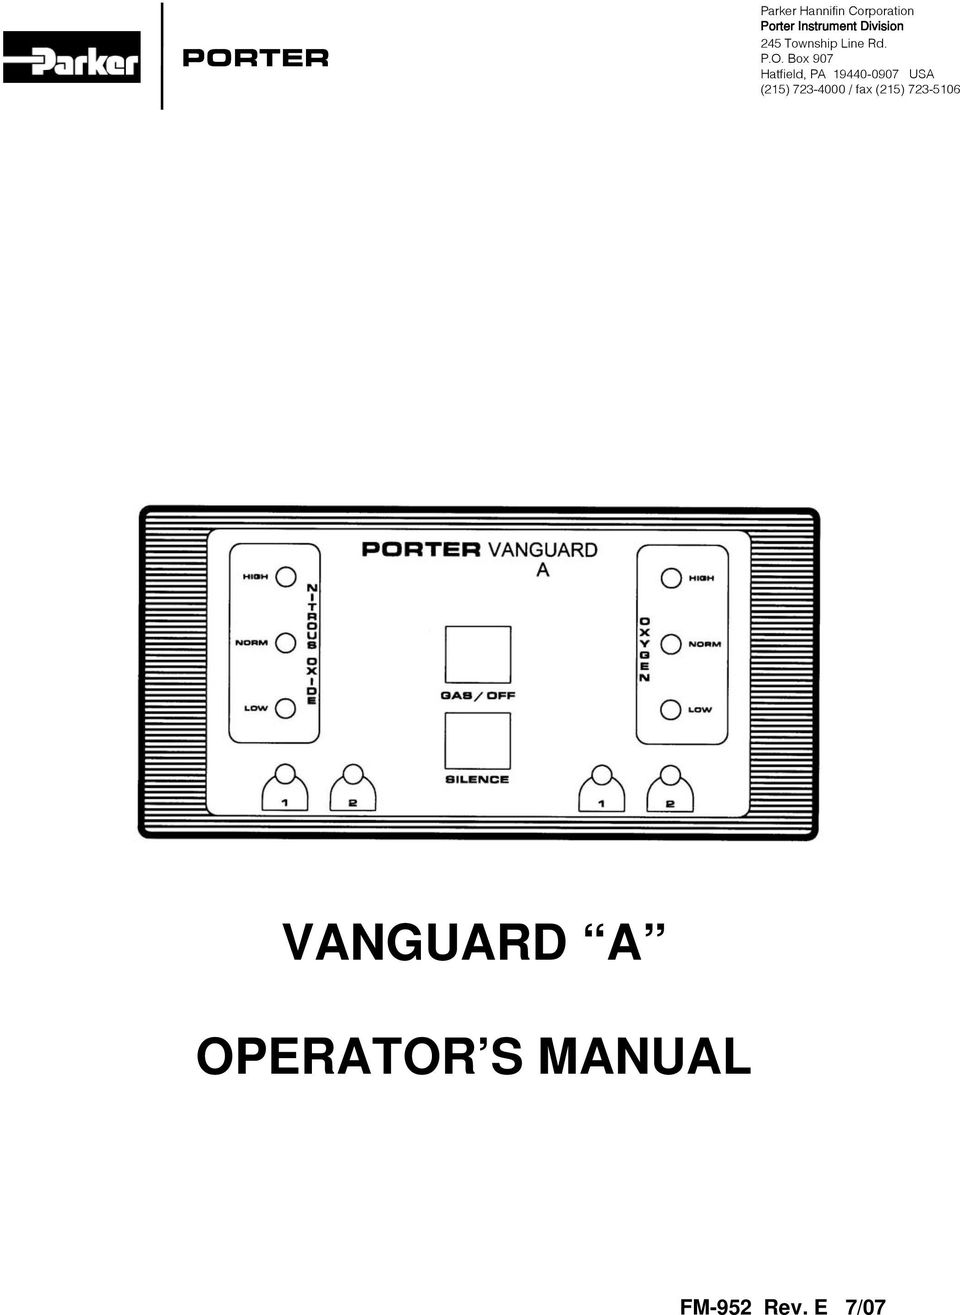 Vanguard A Operator S Manual Porter Fm 952 Rev E 7 07 Pdf Wiring Harness Box 907 Hatfield Pa 19440 0907 Usa 215 723 4000